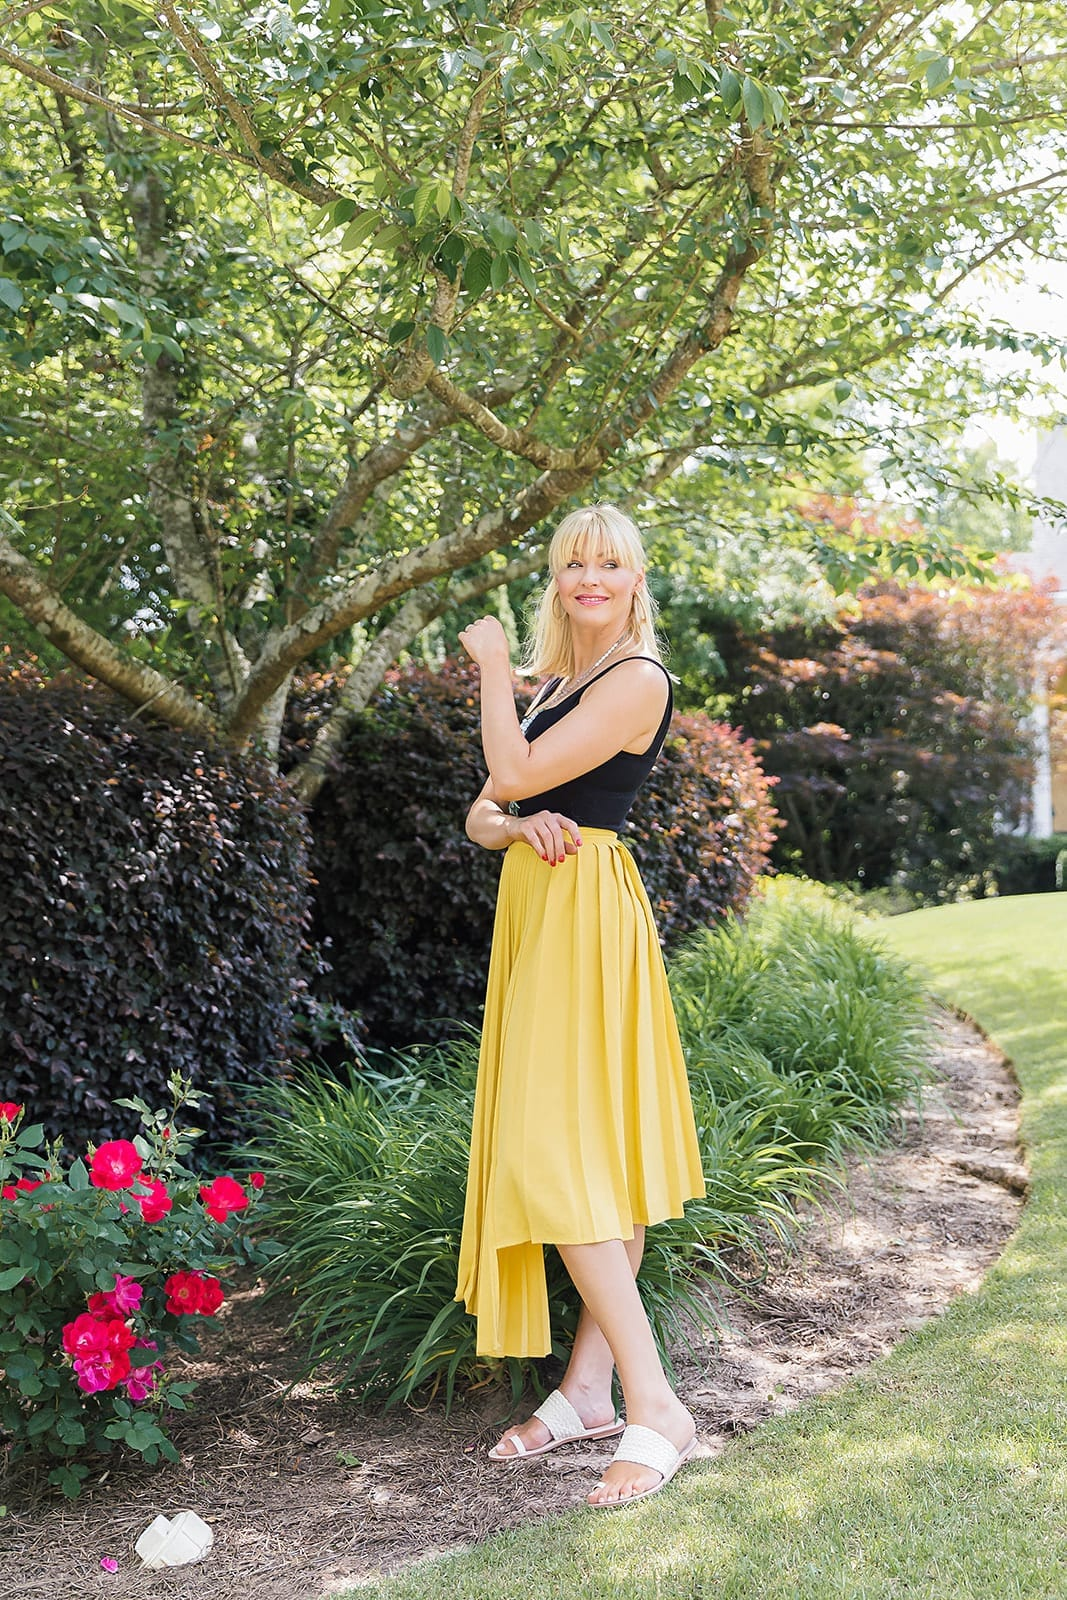 Spring skirt in yellow. How to wear yellow with black.